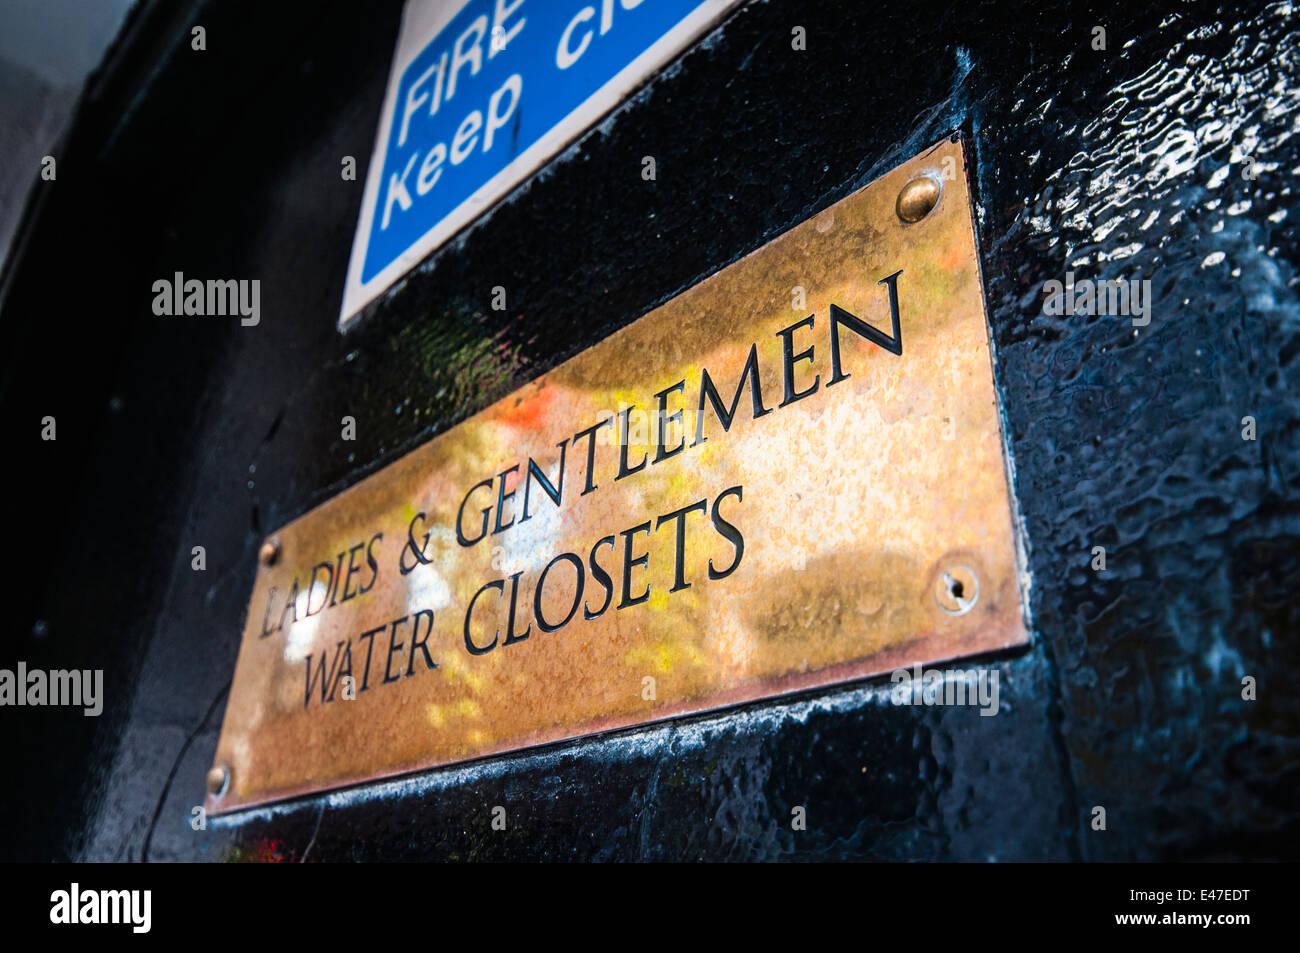 Brass sign for Ladies and Gentlemen Water Closets - Stock Image